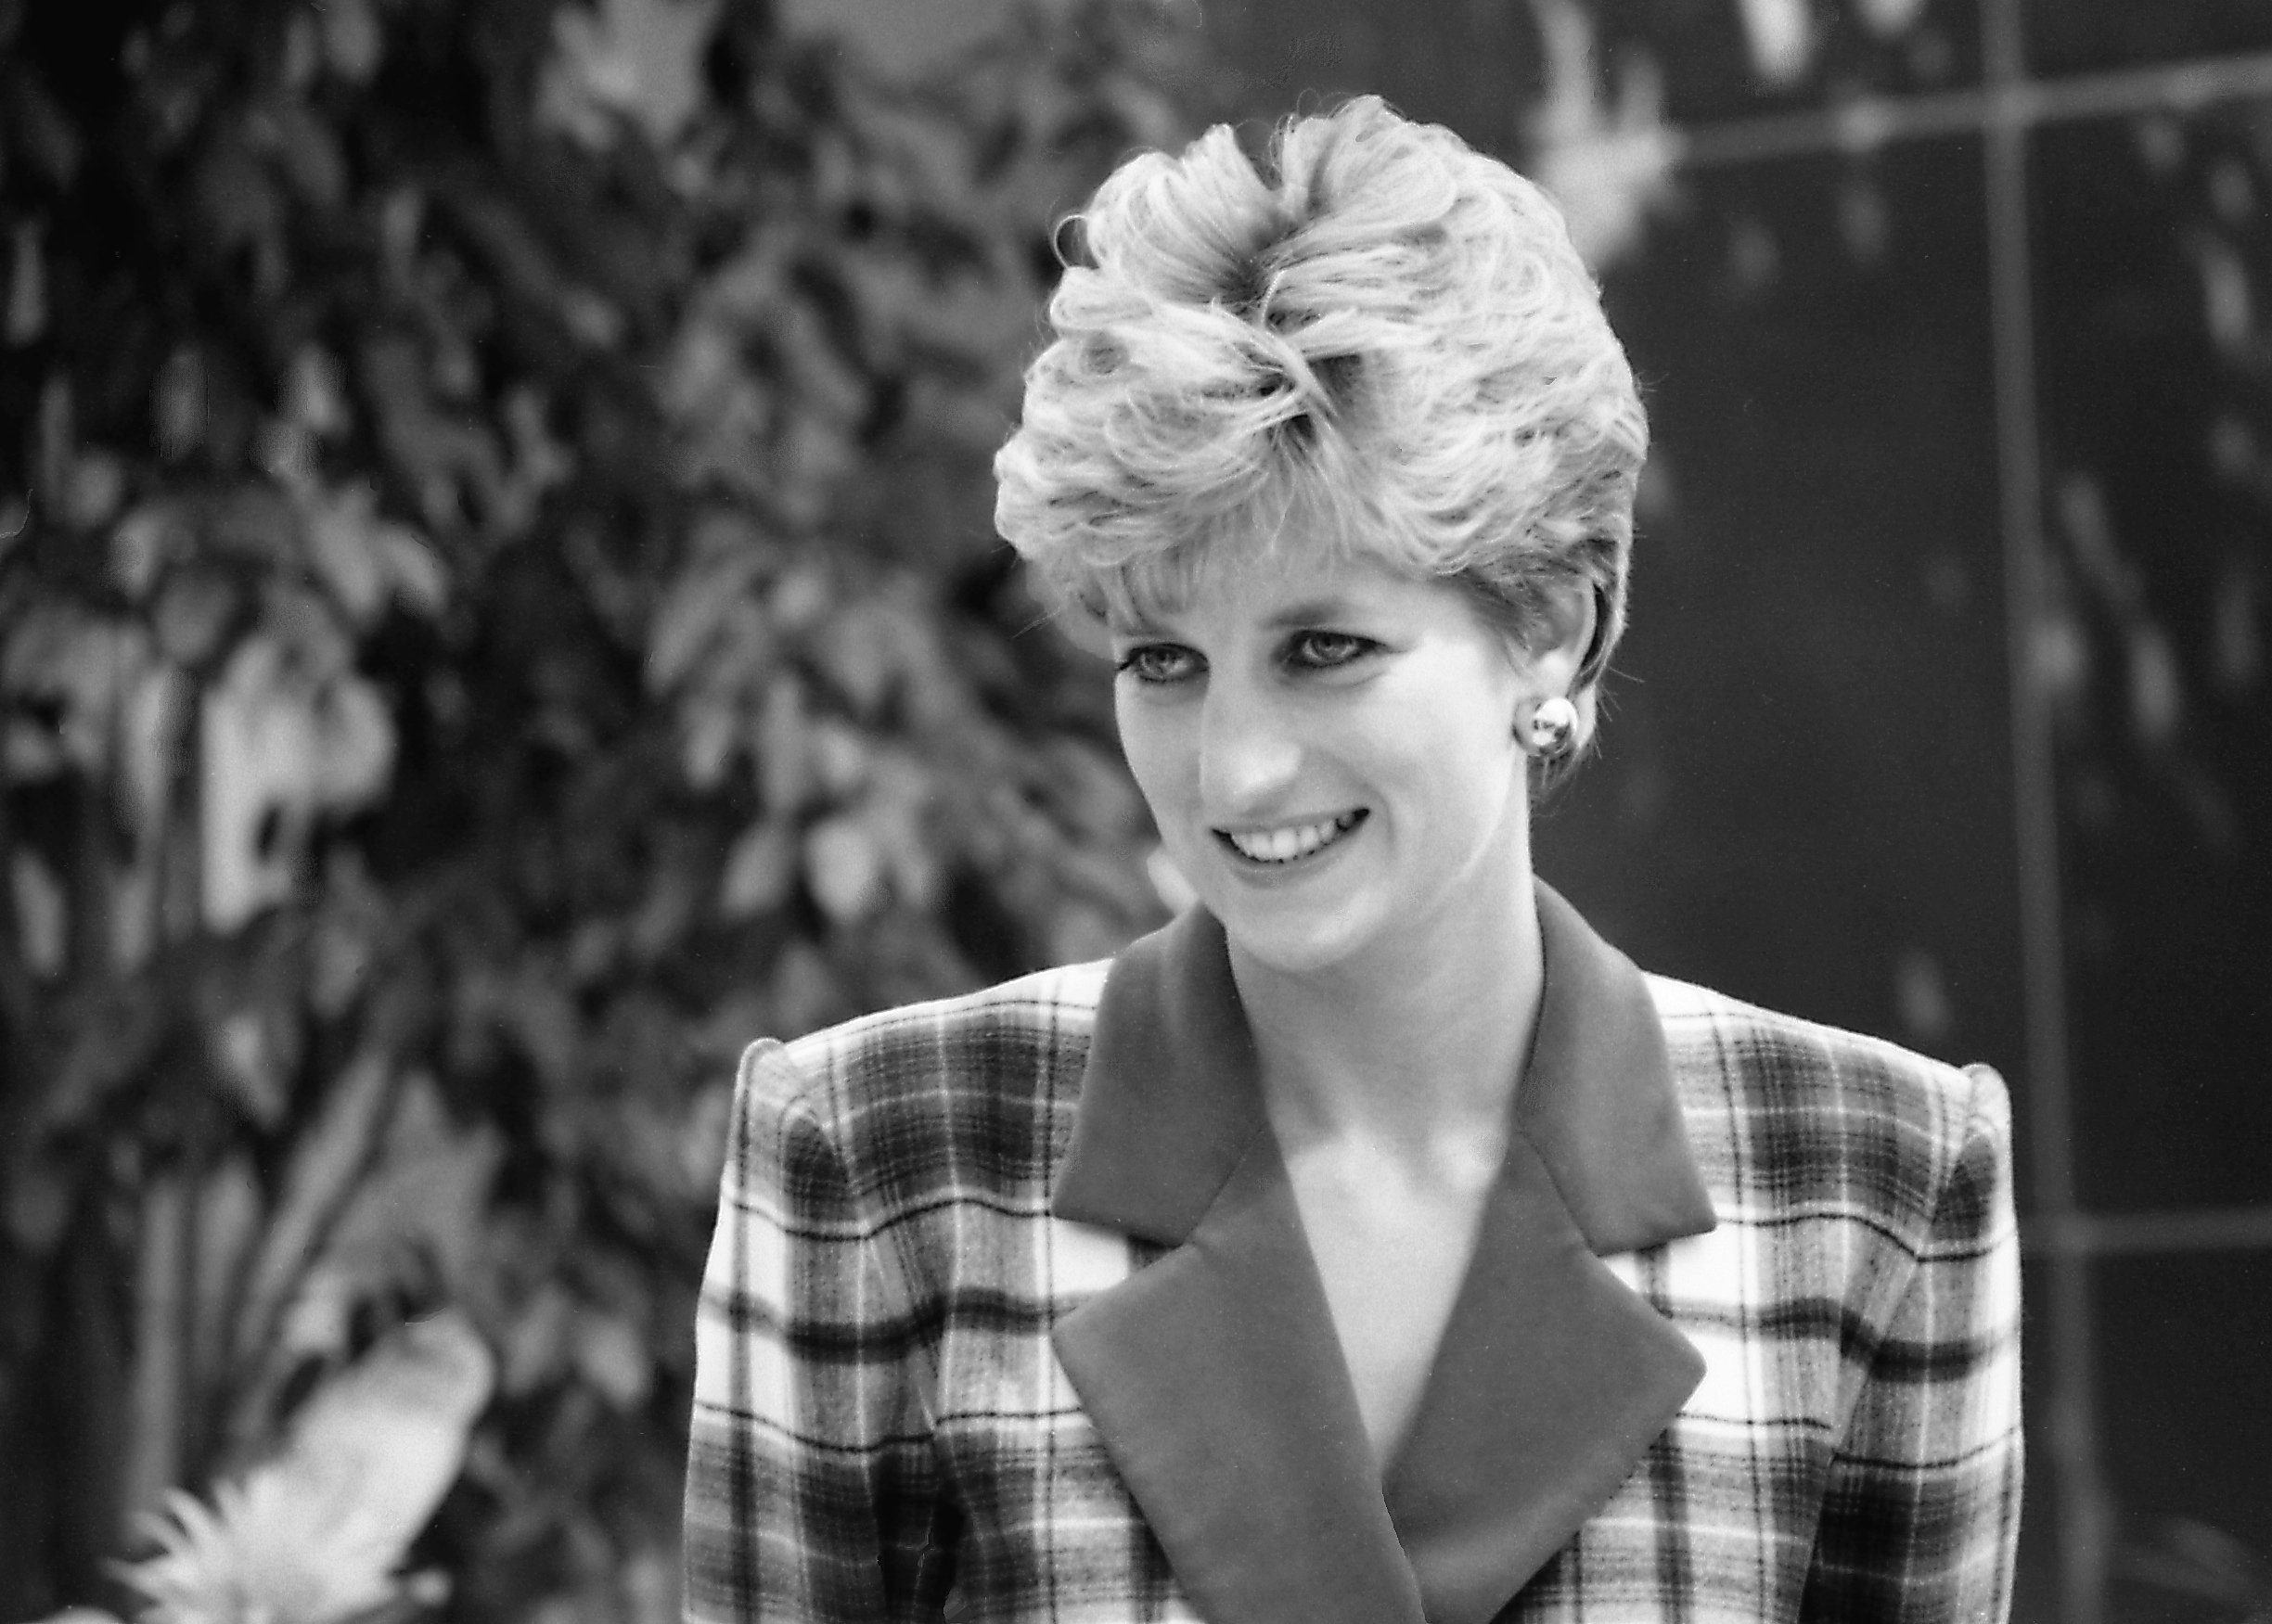 Image Credits: Wikimedia Commons/John MacIntyre | Princess Diana in the late 80s